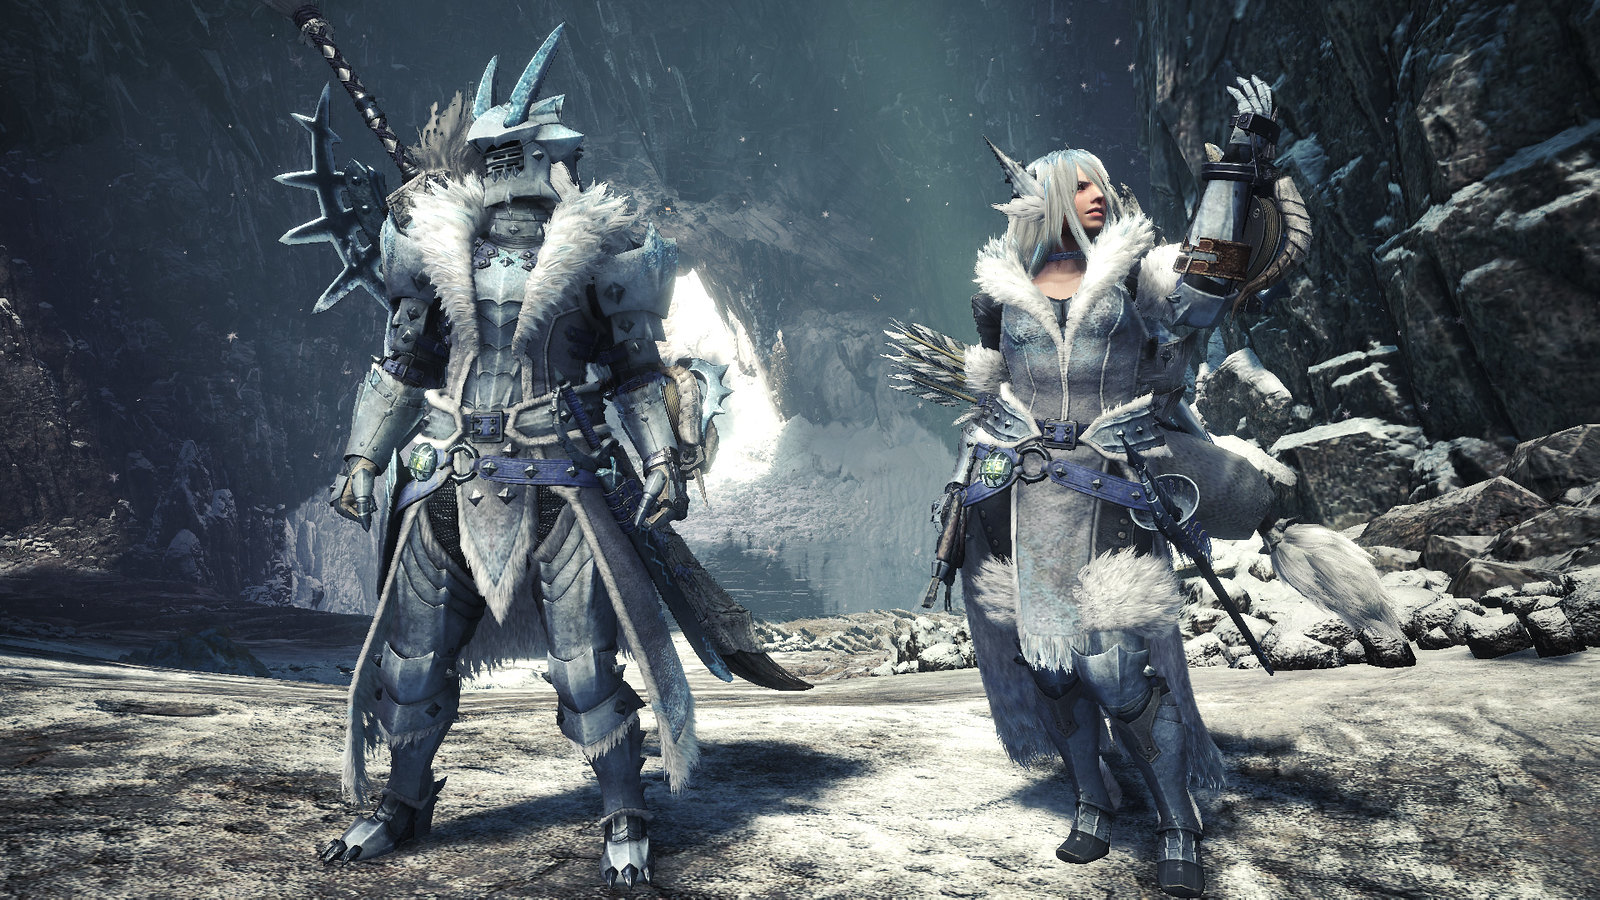 50066326611 2cee0e0a53 h - Alatreon bringt einen Sturm der Elemente ab 09. Juli zu Monster Hunter World: Iceborne